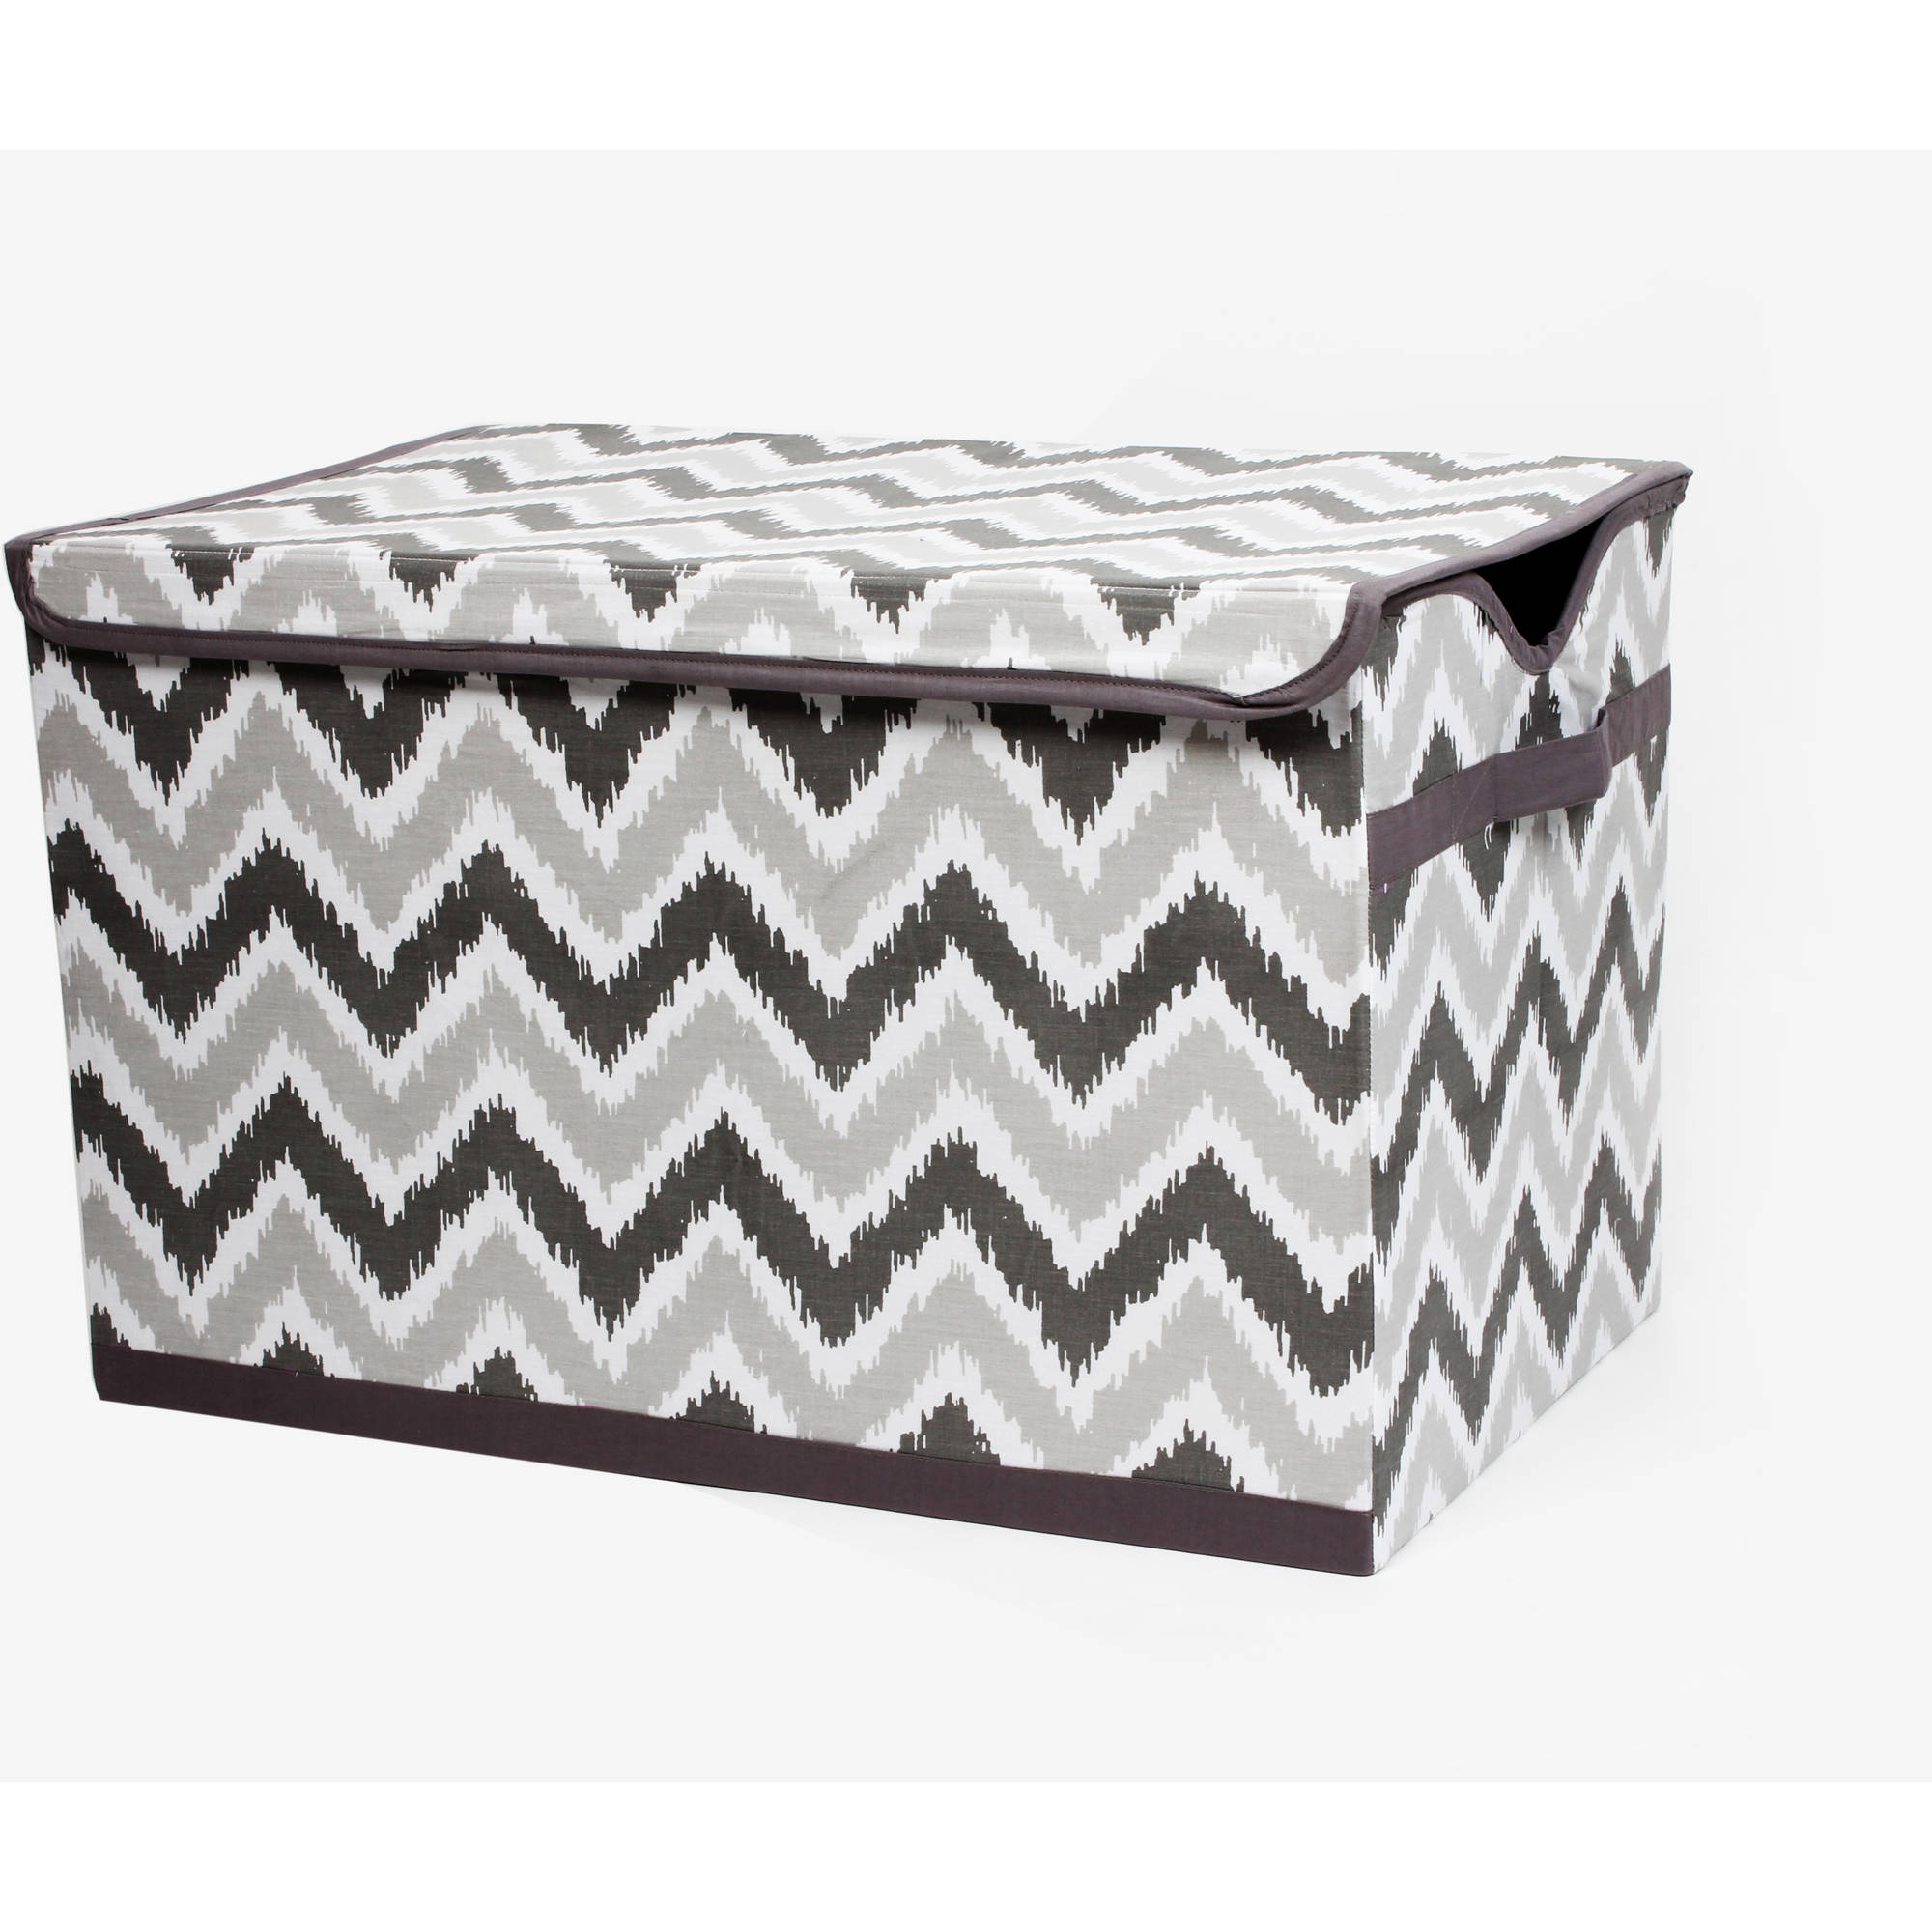 Bacati - MixNMatch Grey Zigzag Cotton Percale Fabric covered Storage, Toy Chest, 24.5 L x 15 W x 14 H inches